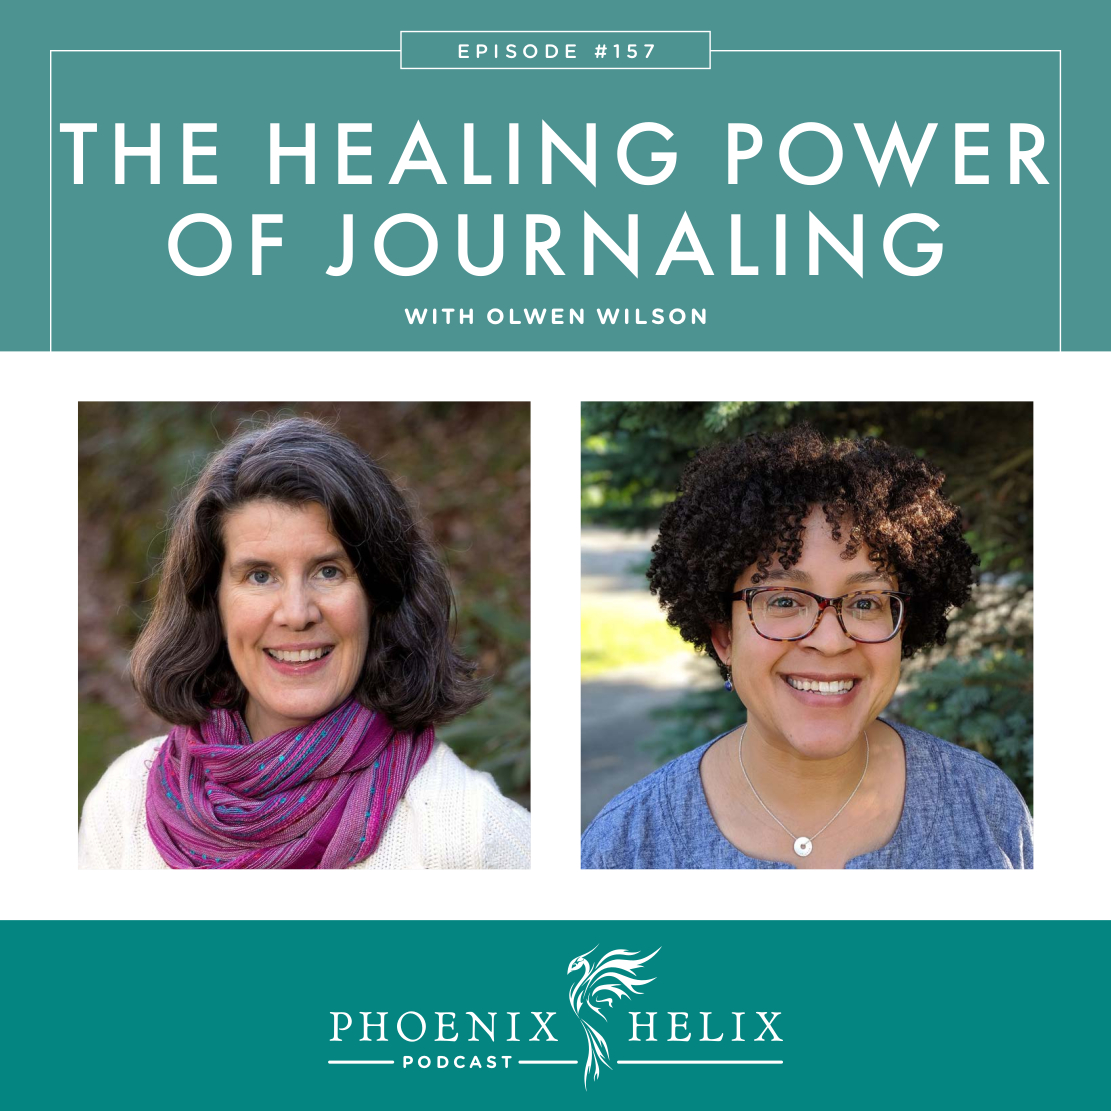 The Healing Power of Journaling with Olwen Wilson | Phoenix Helix Podcast